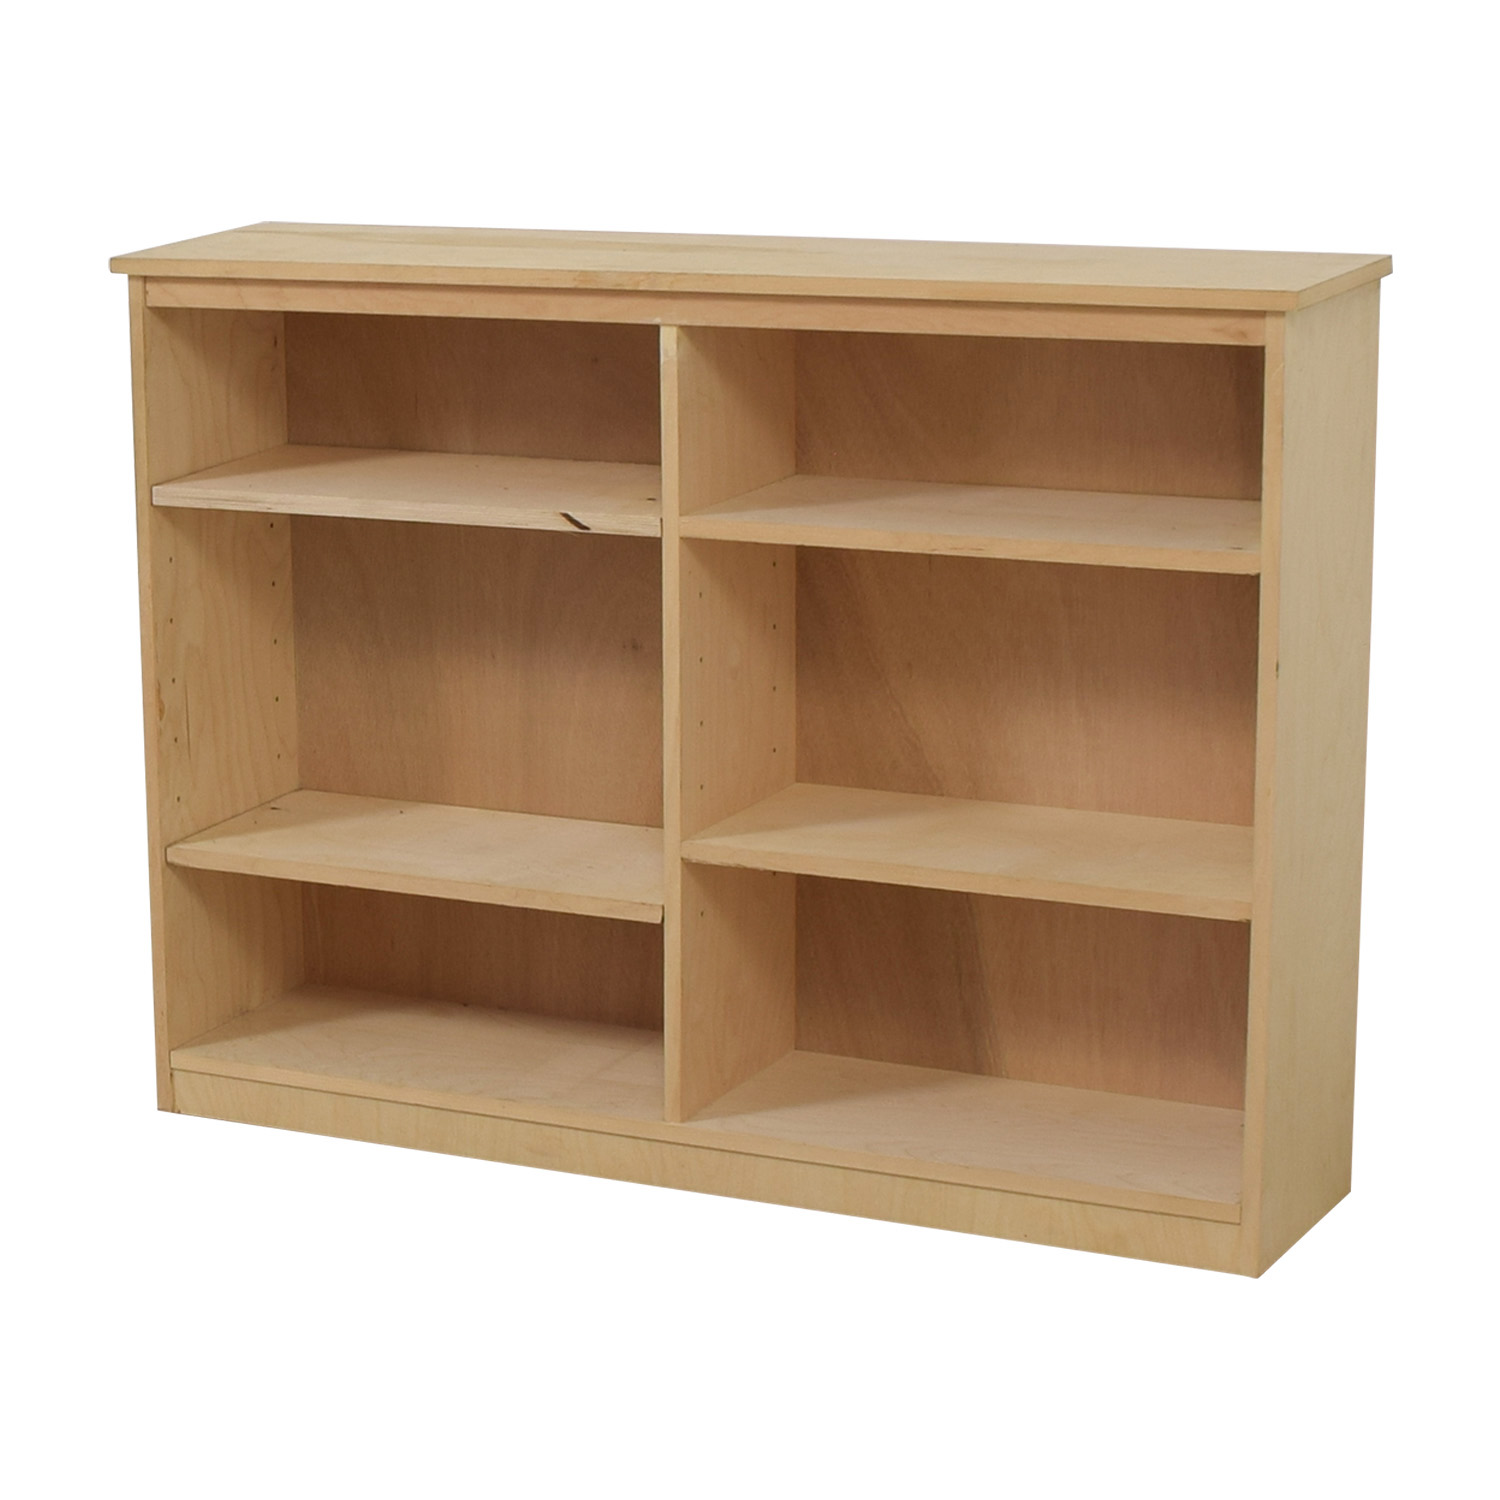 Gothic Cabinet Craft Furniture Unfinished Wood Bookshelf For Sale